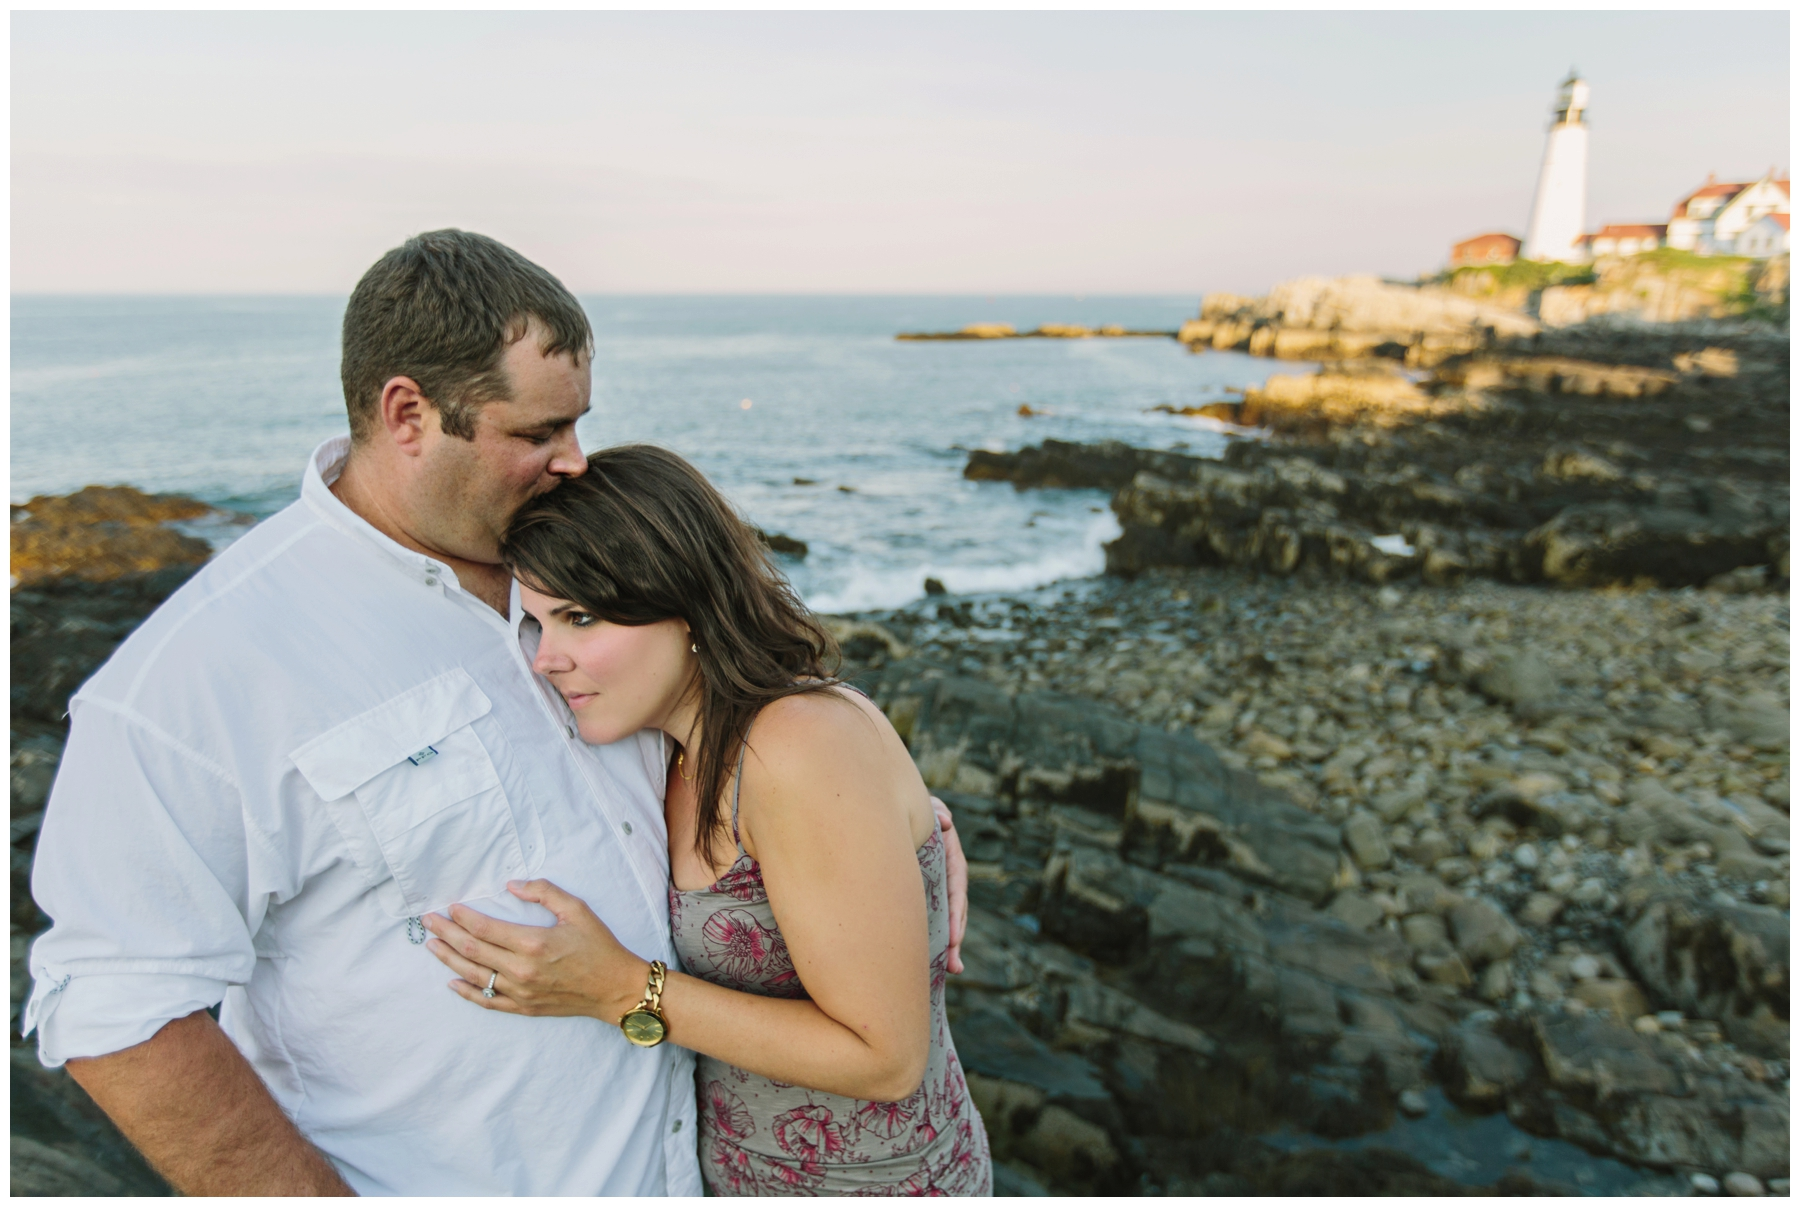 Maine_Photographer_Engagements_FortWilliams_PortlandHeadLight_lighthouse_coastal_seaside-005